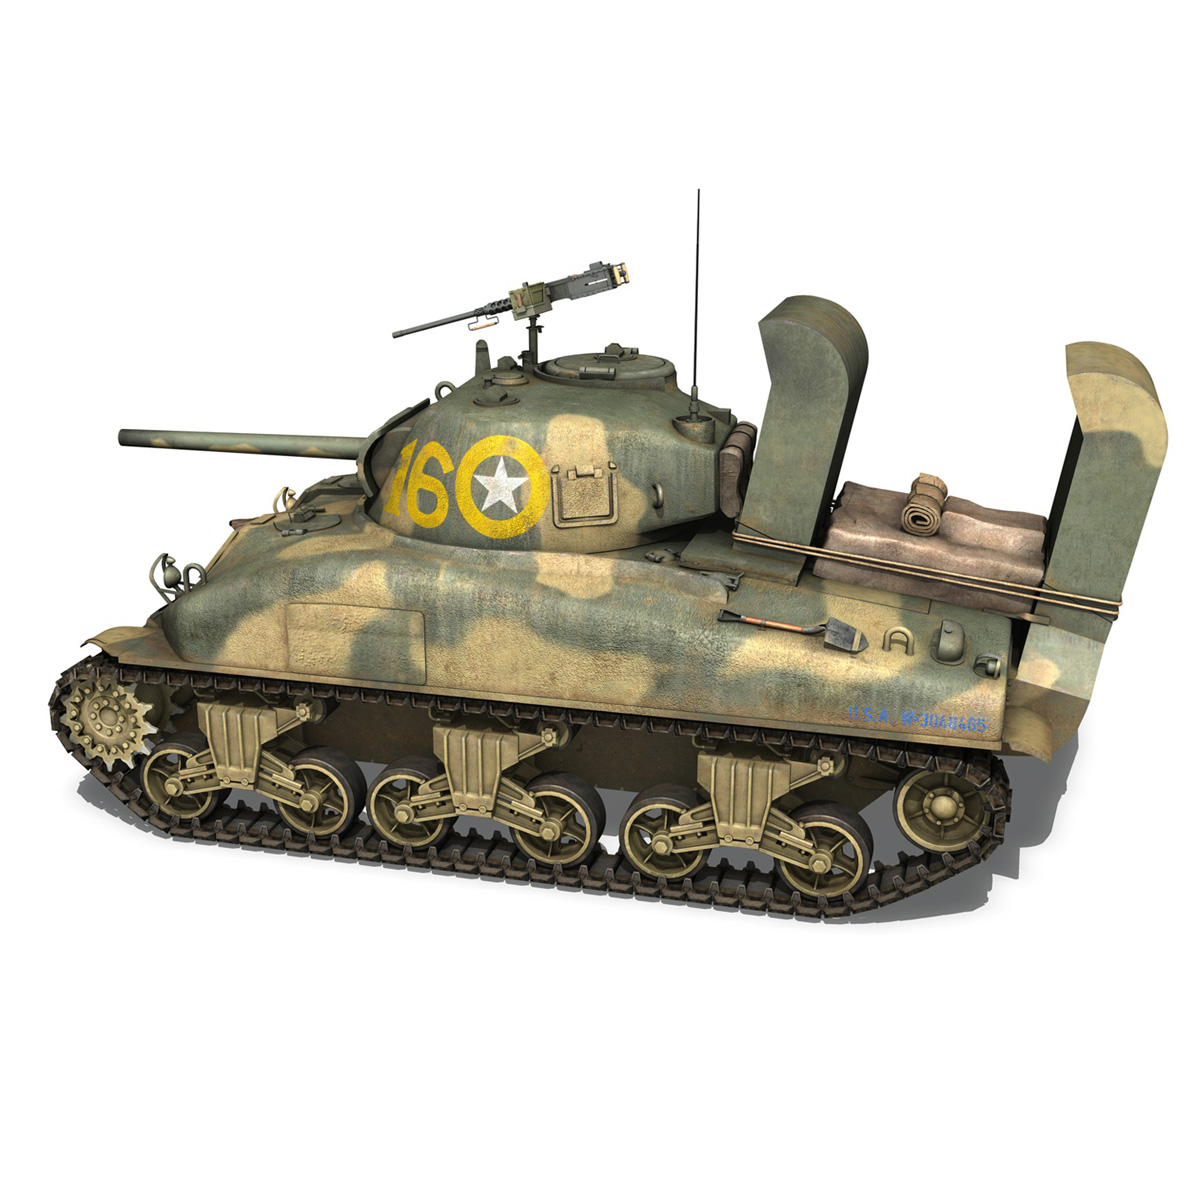 m4a1 sherman – 16 3d model 3ds fbx c4d lwo obj 273053